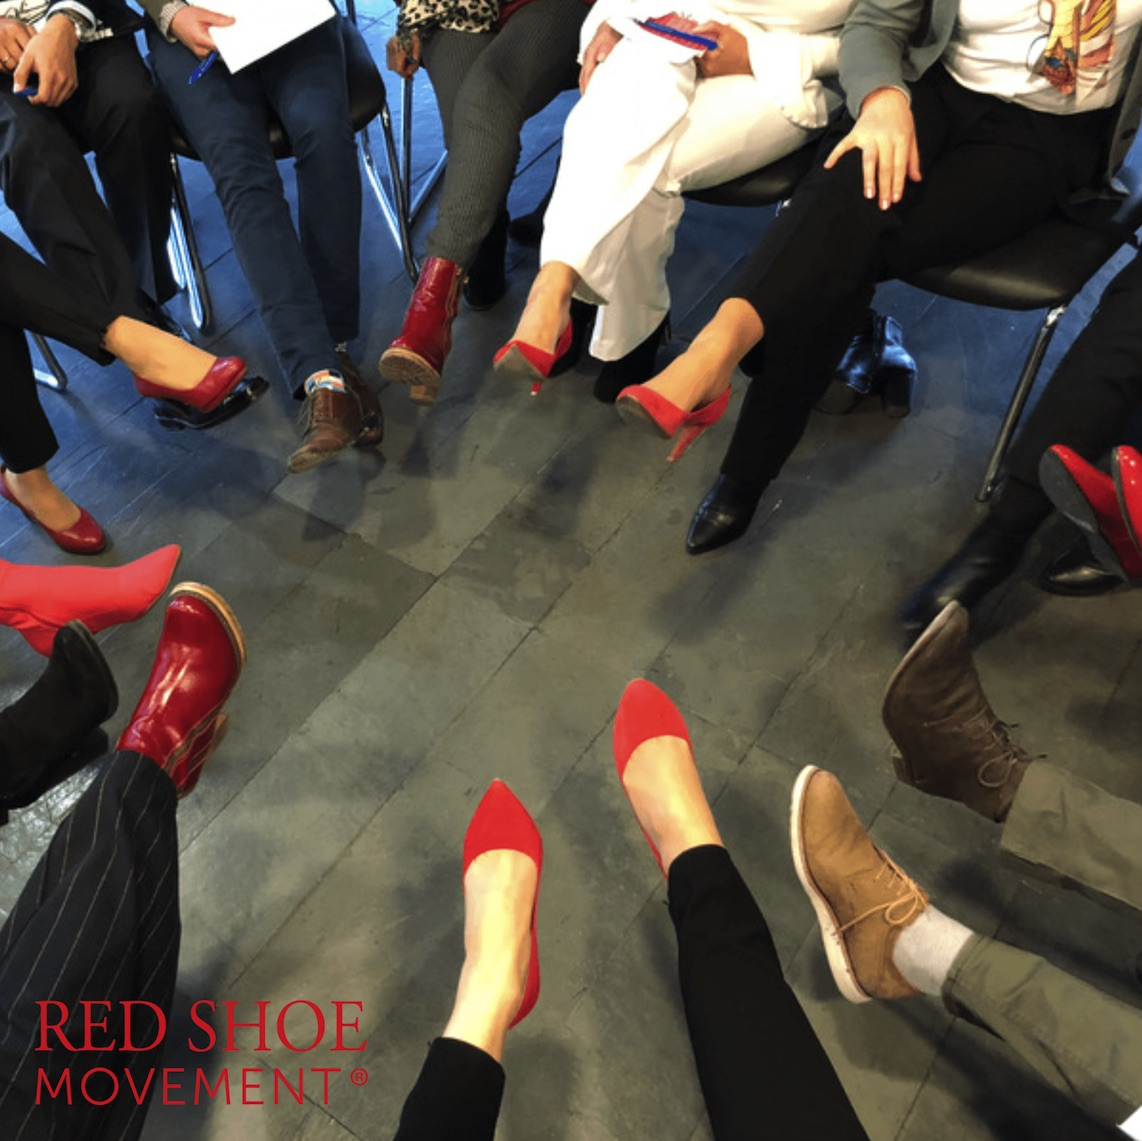 The RSM Circles are one of the effective solutions to promote gender equality in your workplace.